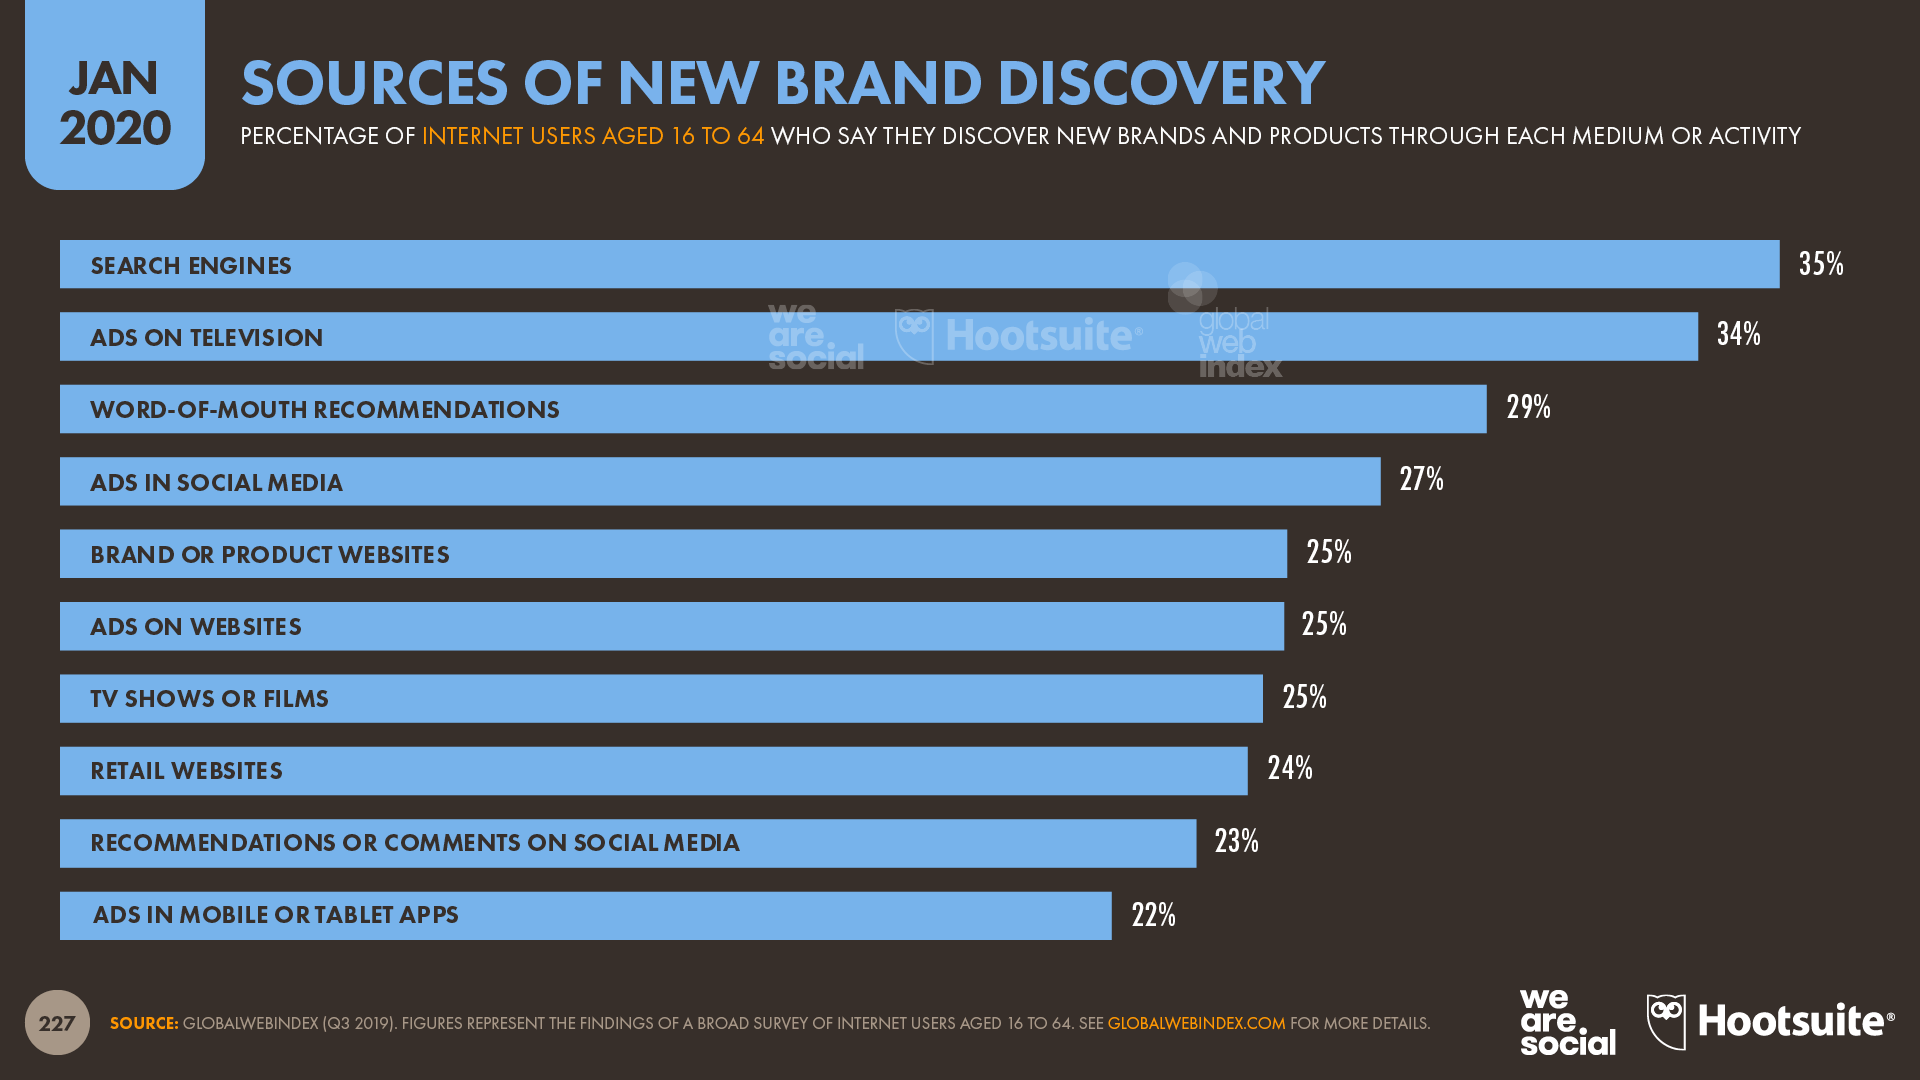 New brand marketing sources